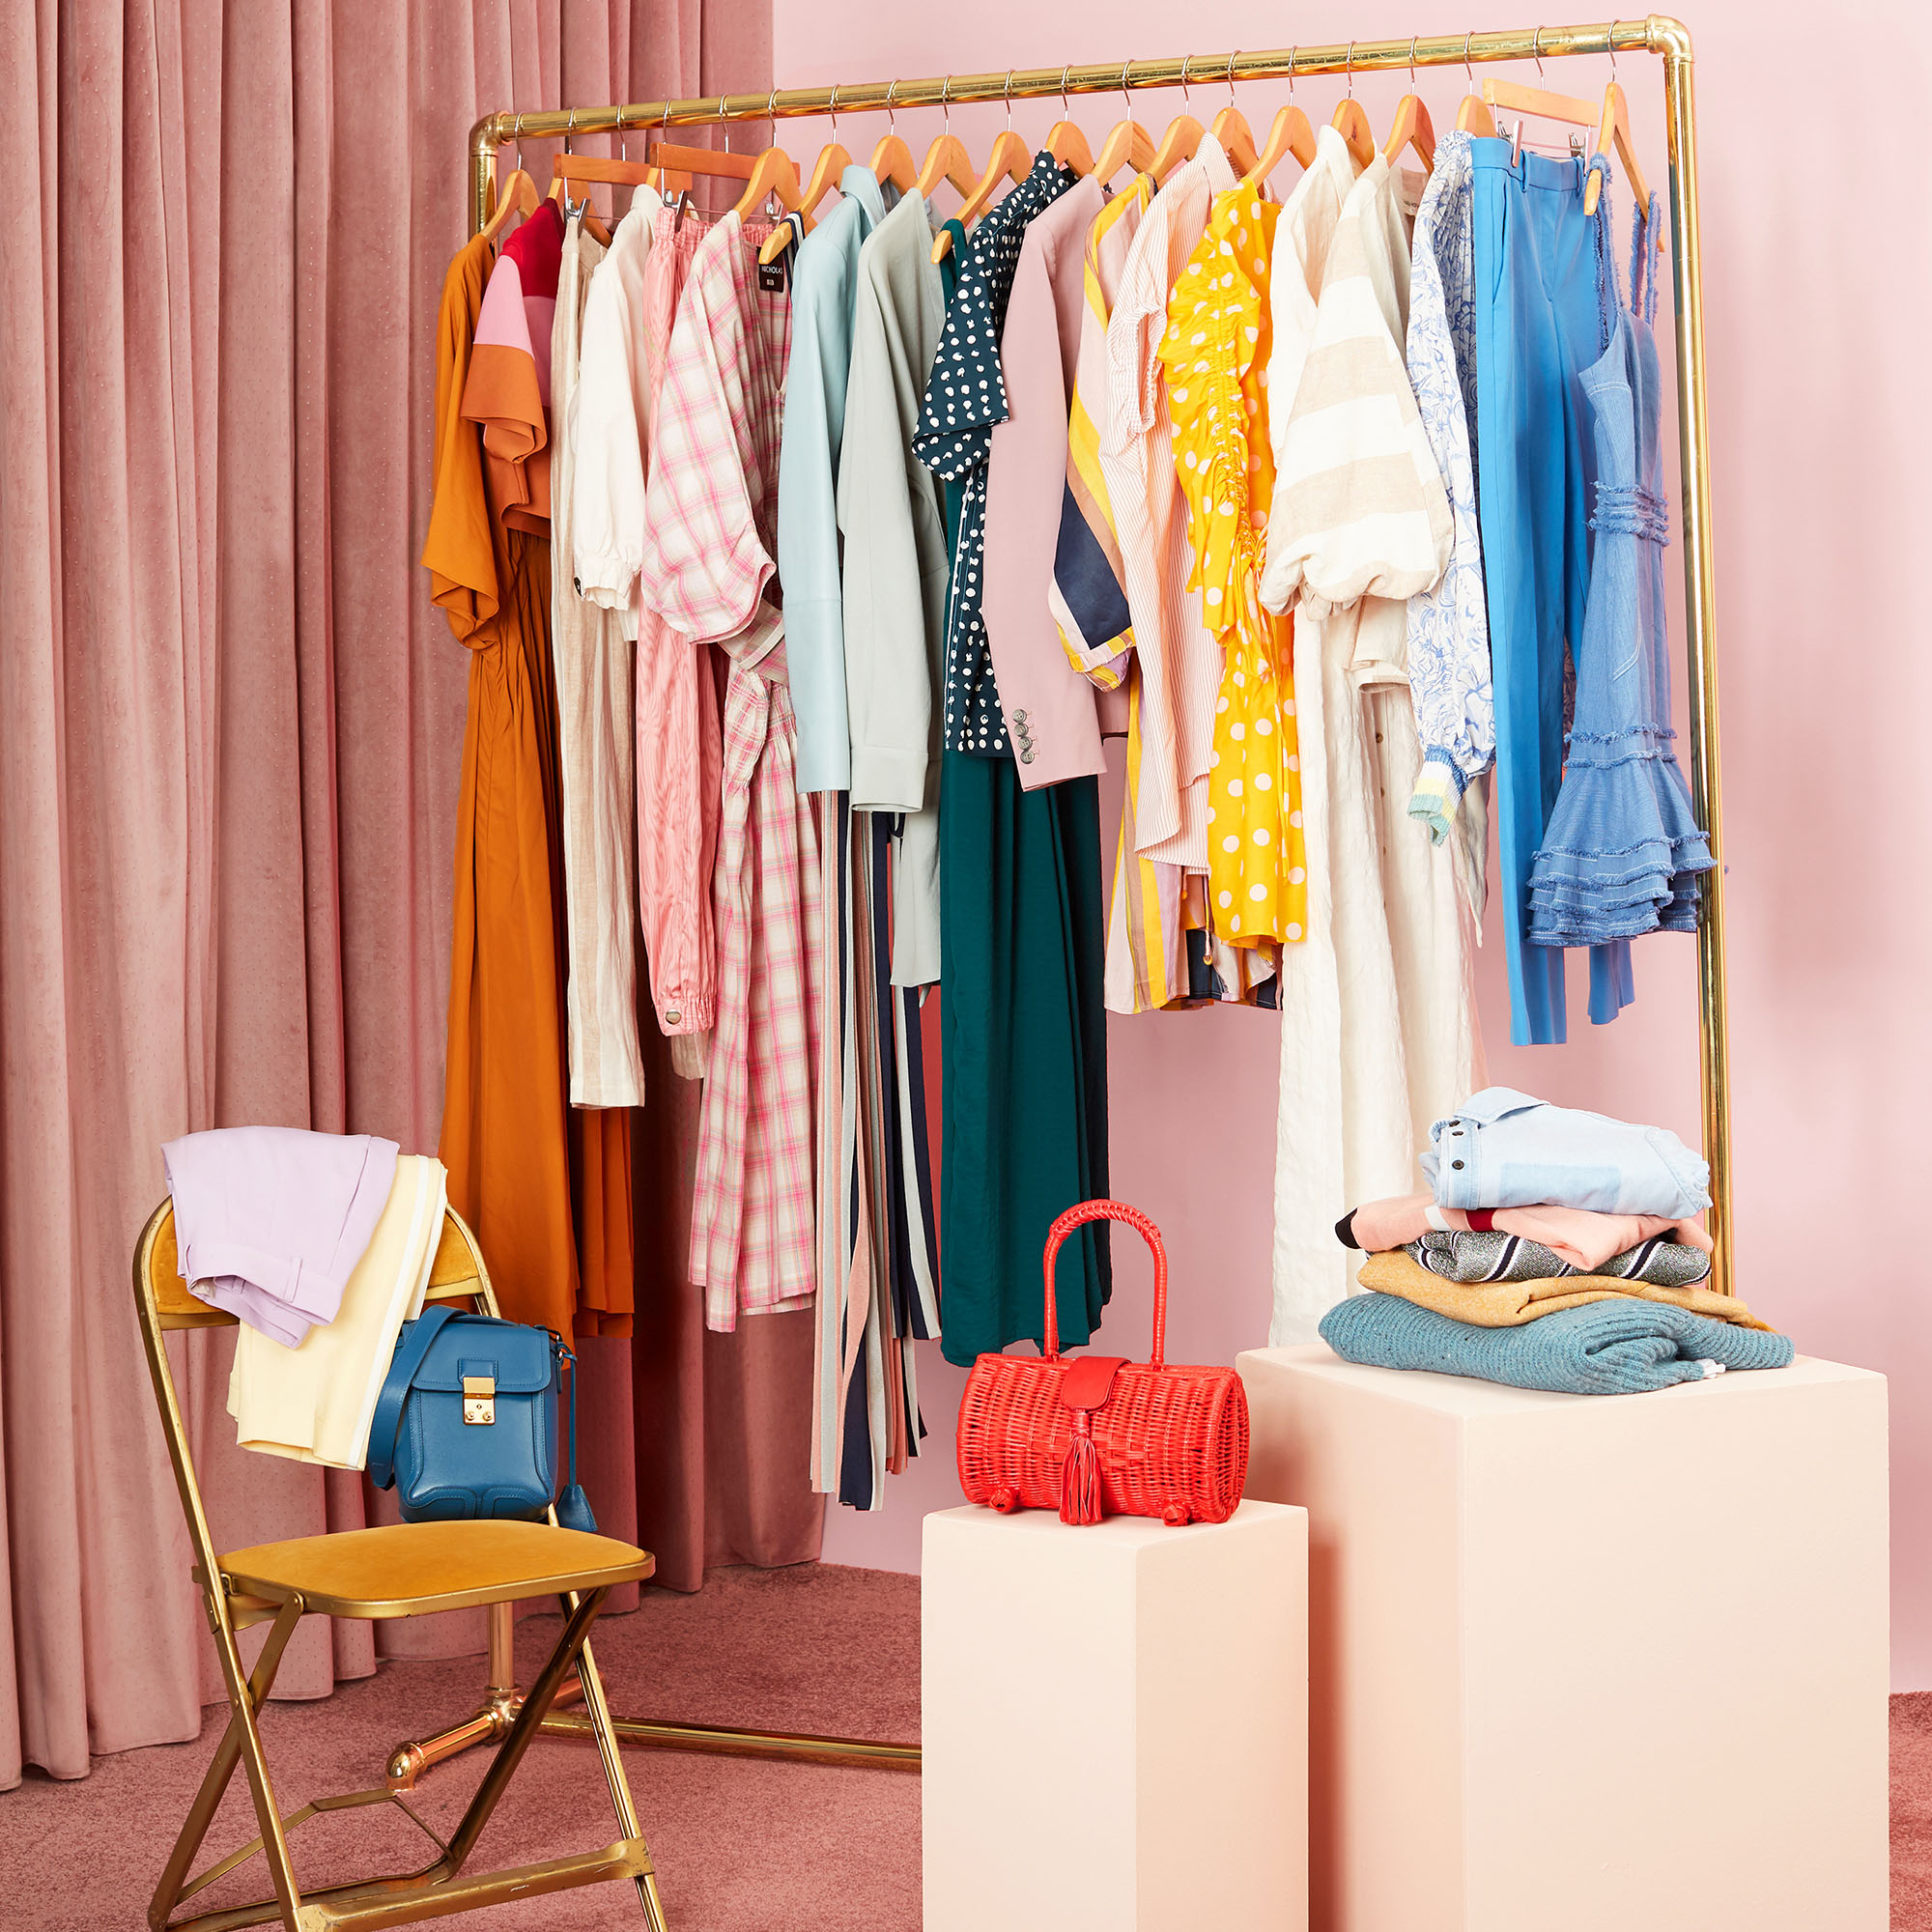 Rent the Runway Unlimited Subscription Box